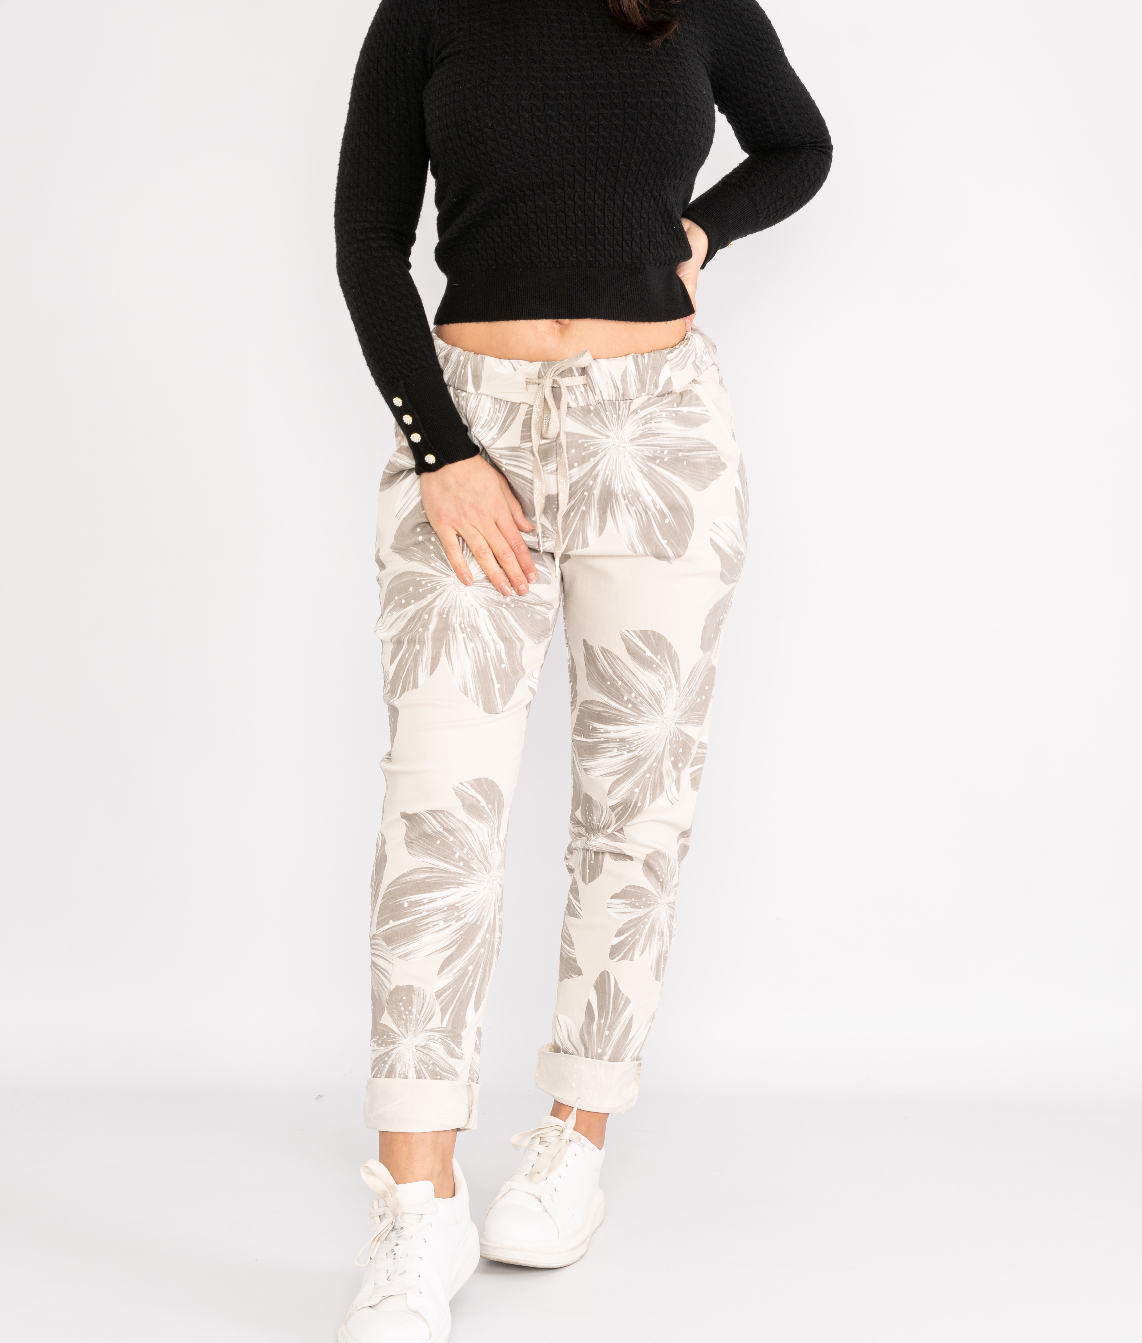 Floral print magic trousers Lucy Sparks